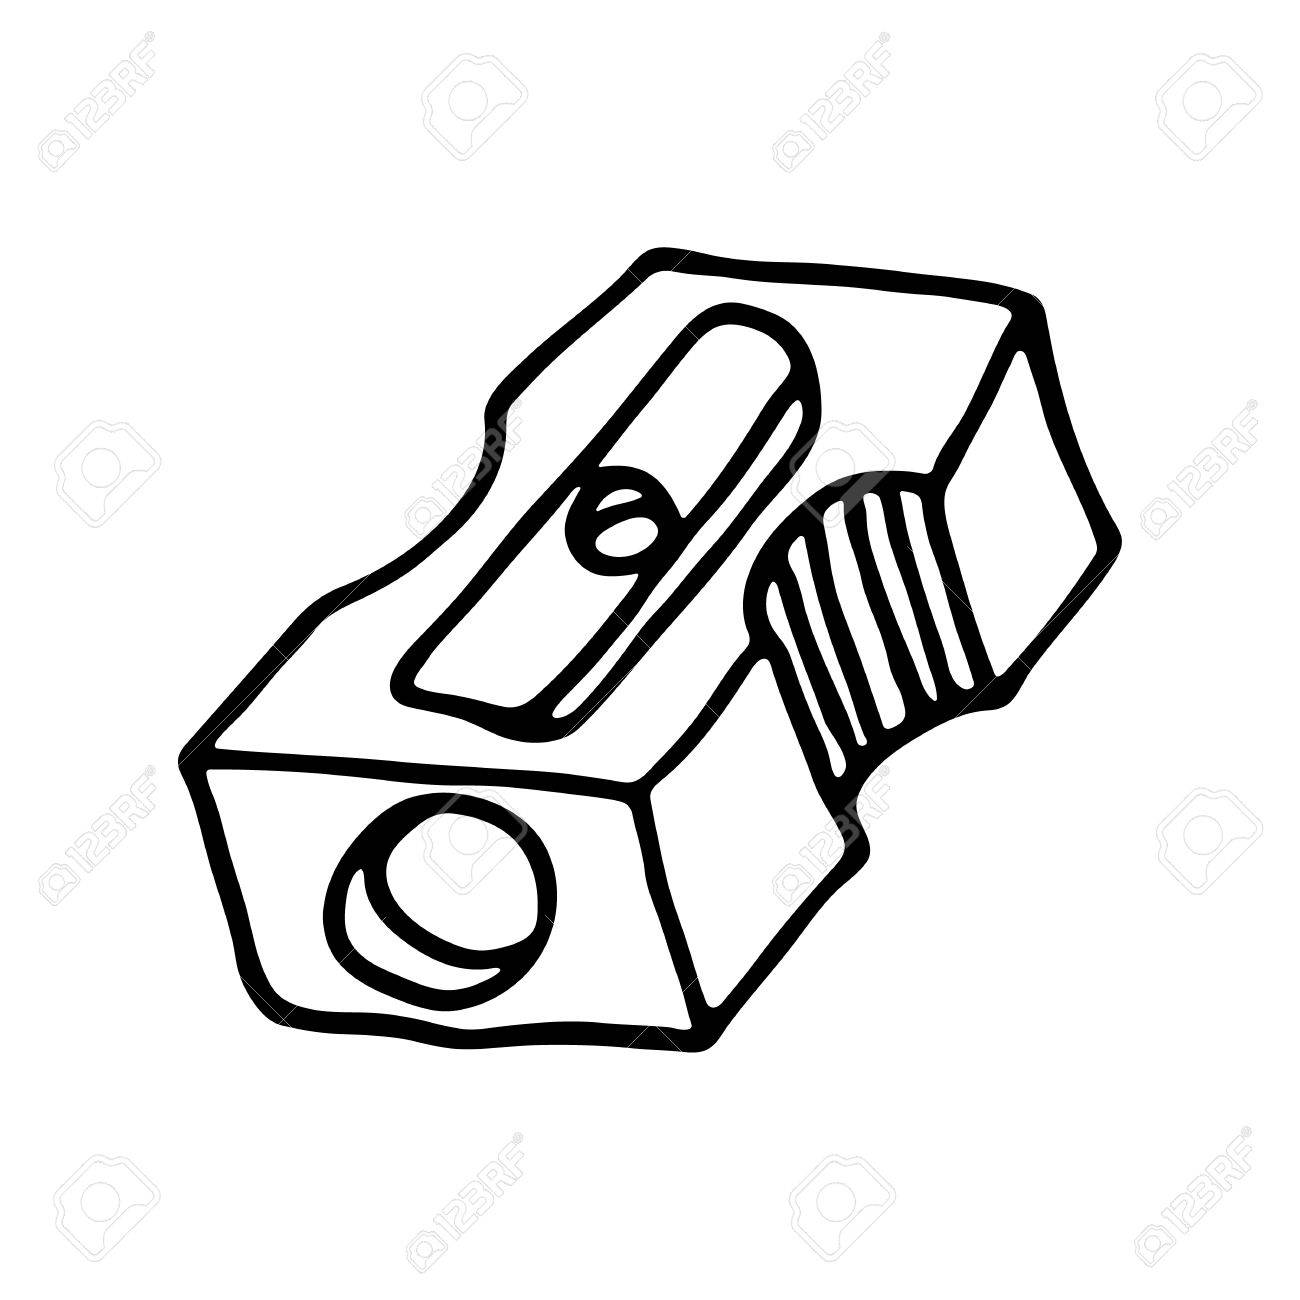 pencil sharpener icon. outlined on white background. royalty free